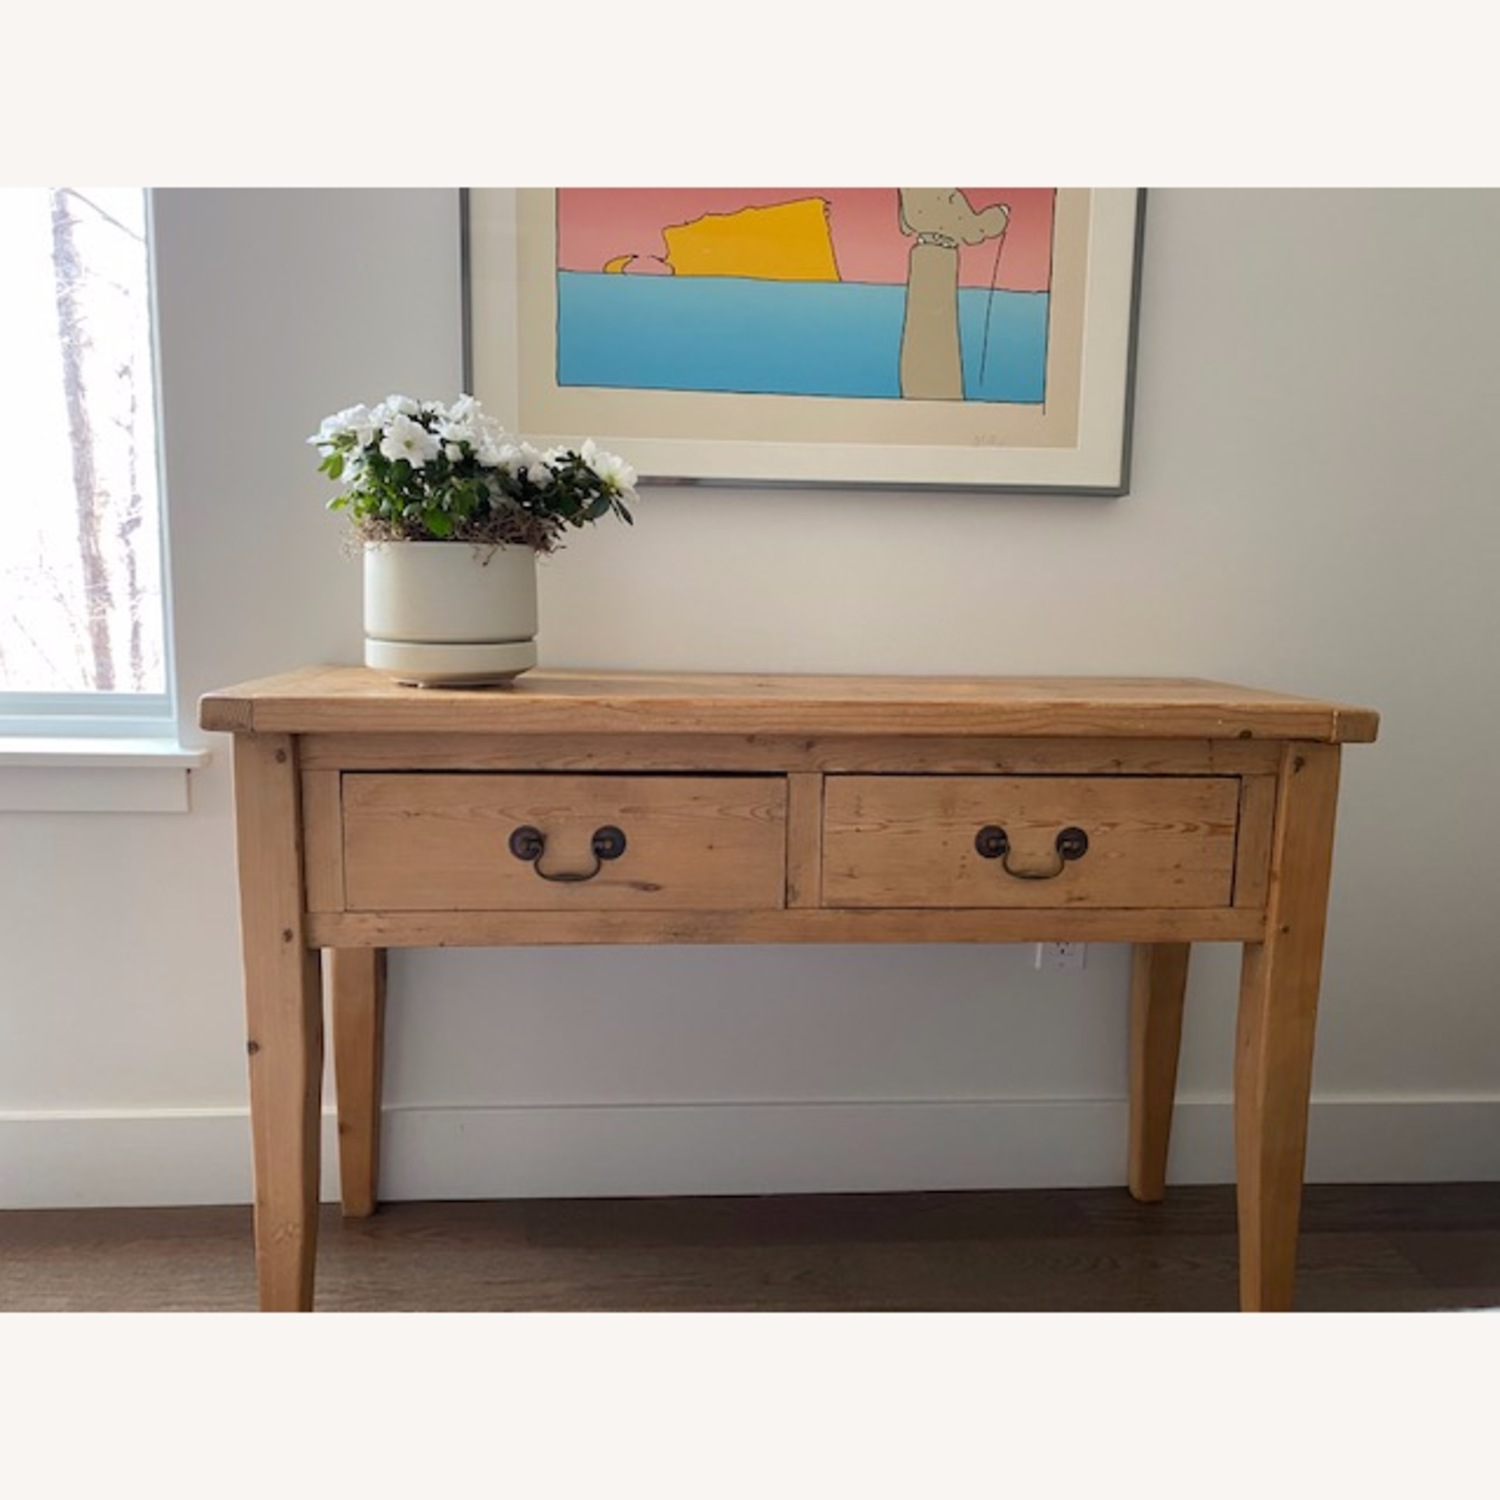 Vintage Pine Console Table with Drawers - image-7